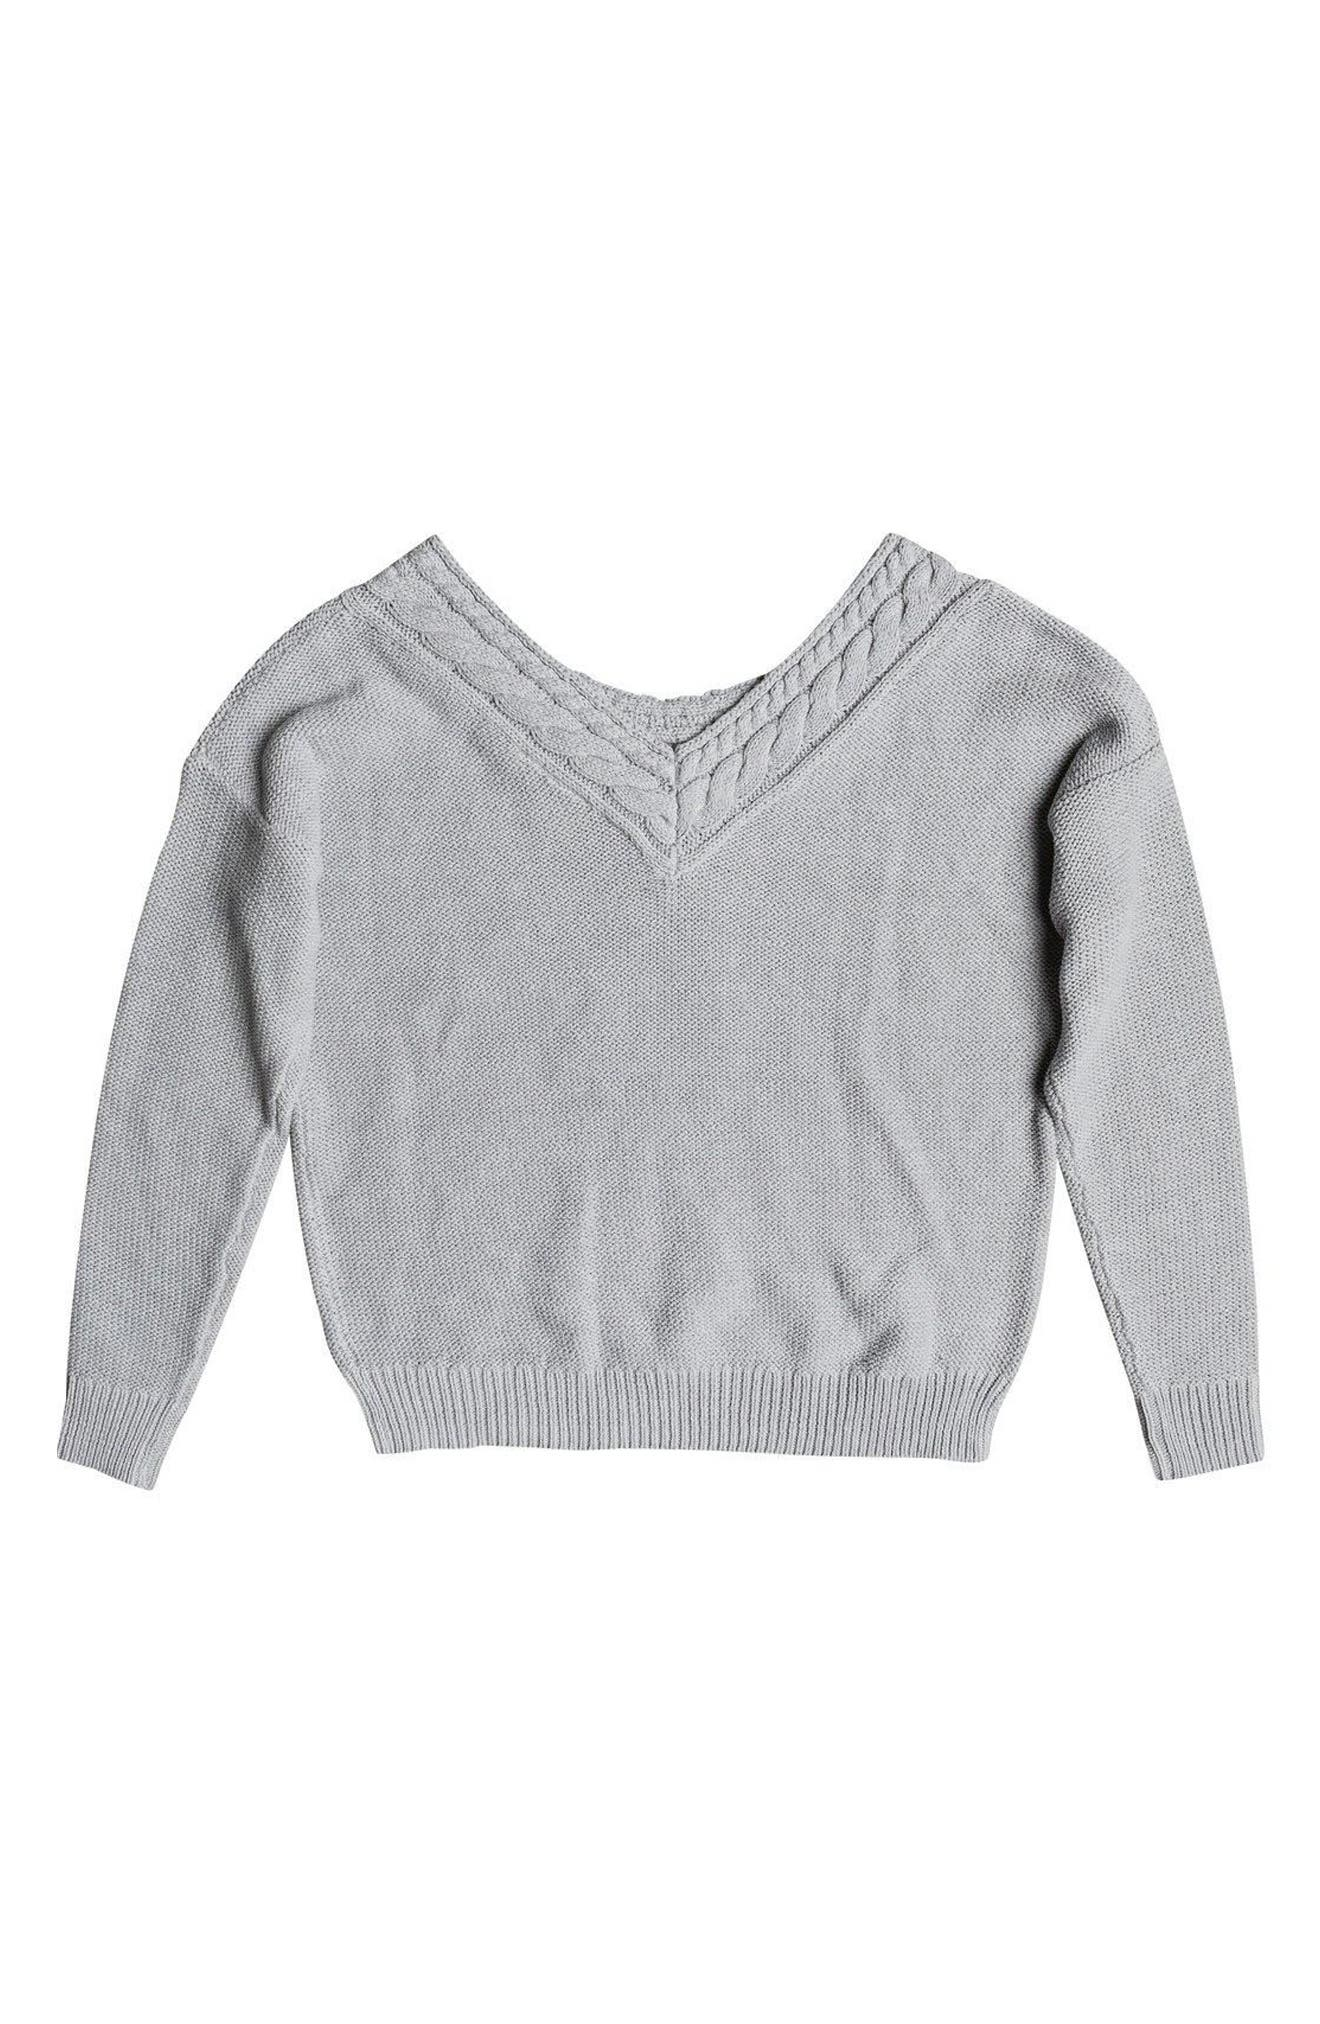 Choose to Shine Sweater,                             Alternate thumbnail 4, color,                             Heritage Heather